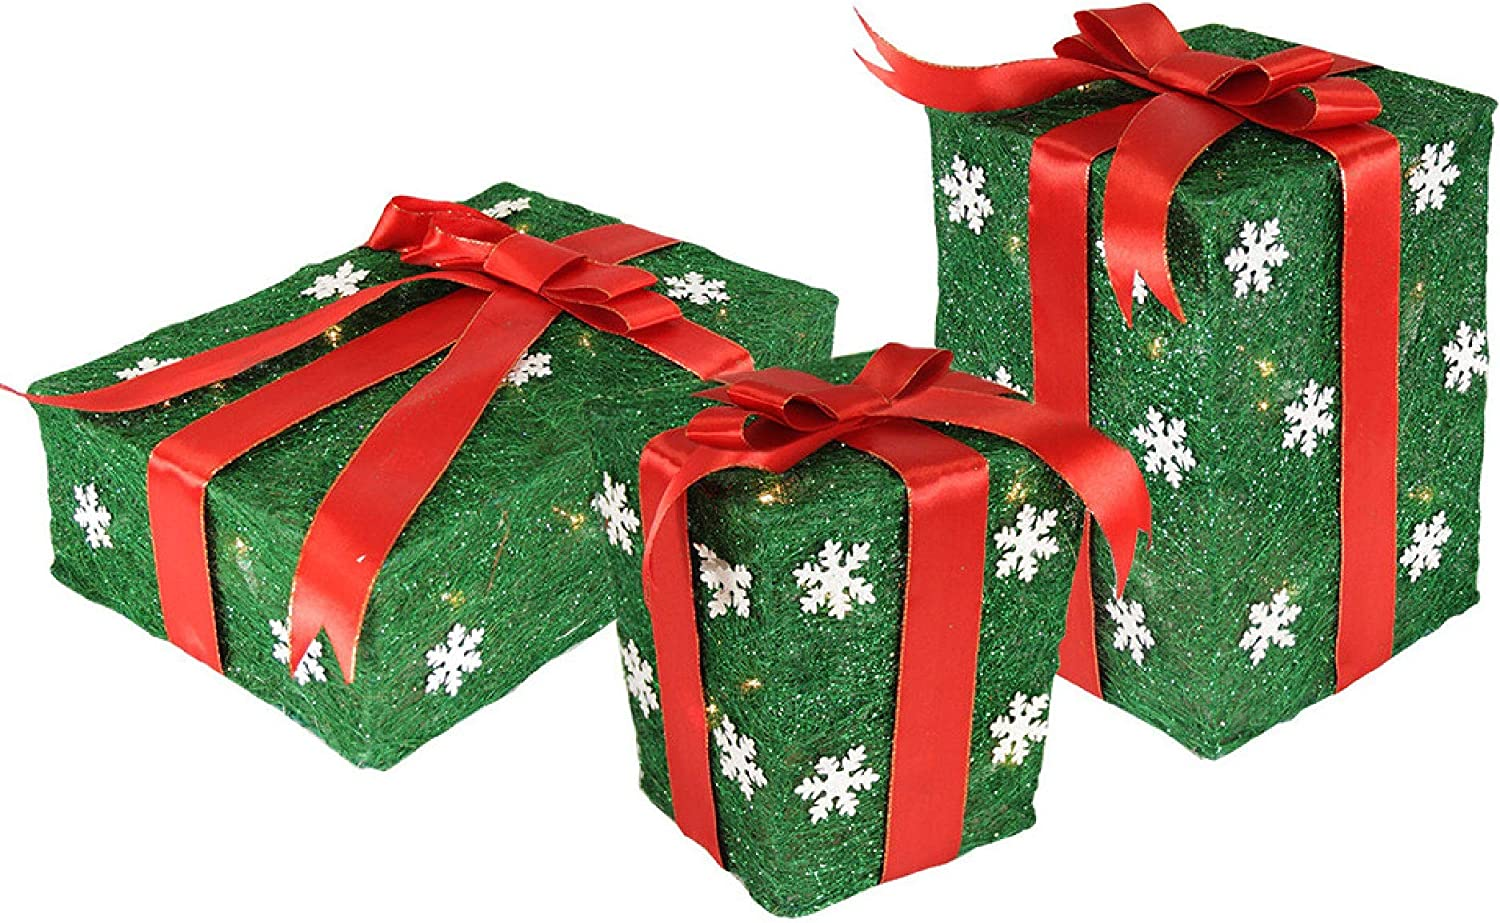 Northlight Set Of 3 Pre Lit Green And Red Gift Boxes Outdoor Christmas Decorations 13 Garden Outdoor